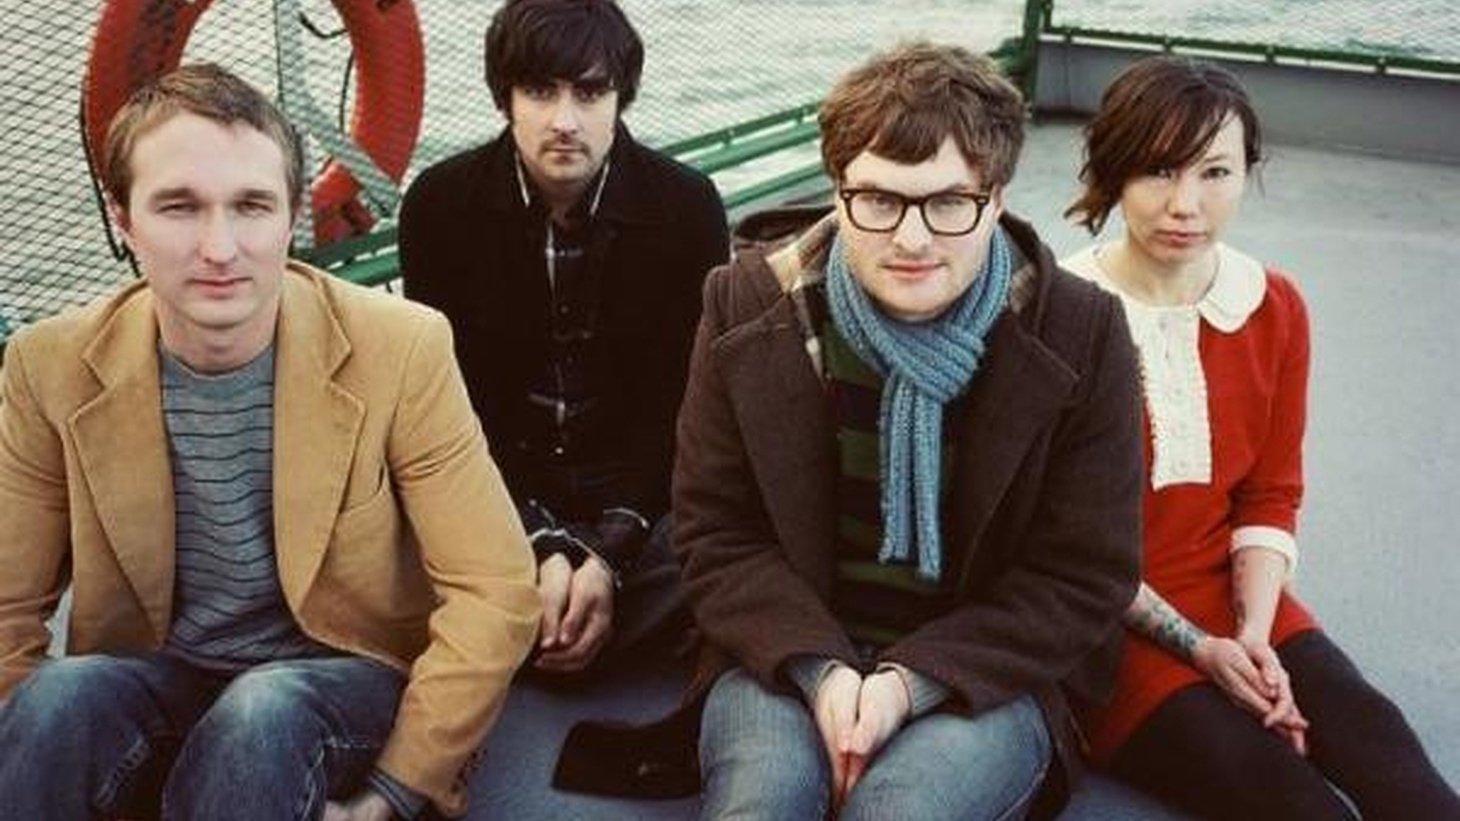 Michael Benjamin Lerner a.k.a. Telekinesis brings his band for a session on Morning Becomes Eclectic at 11:15am.